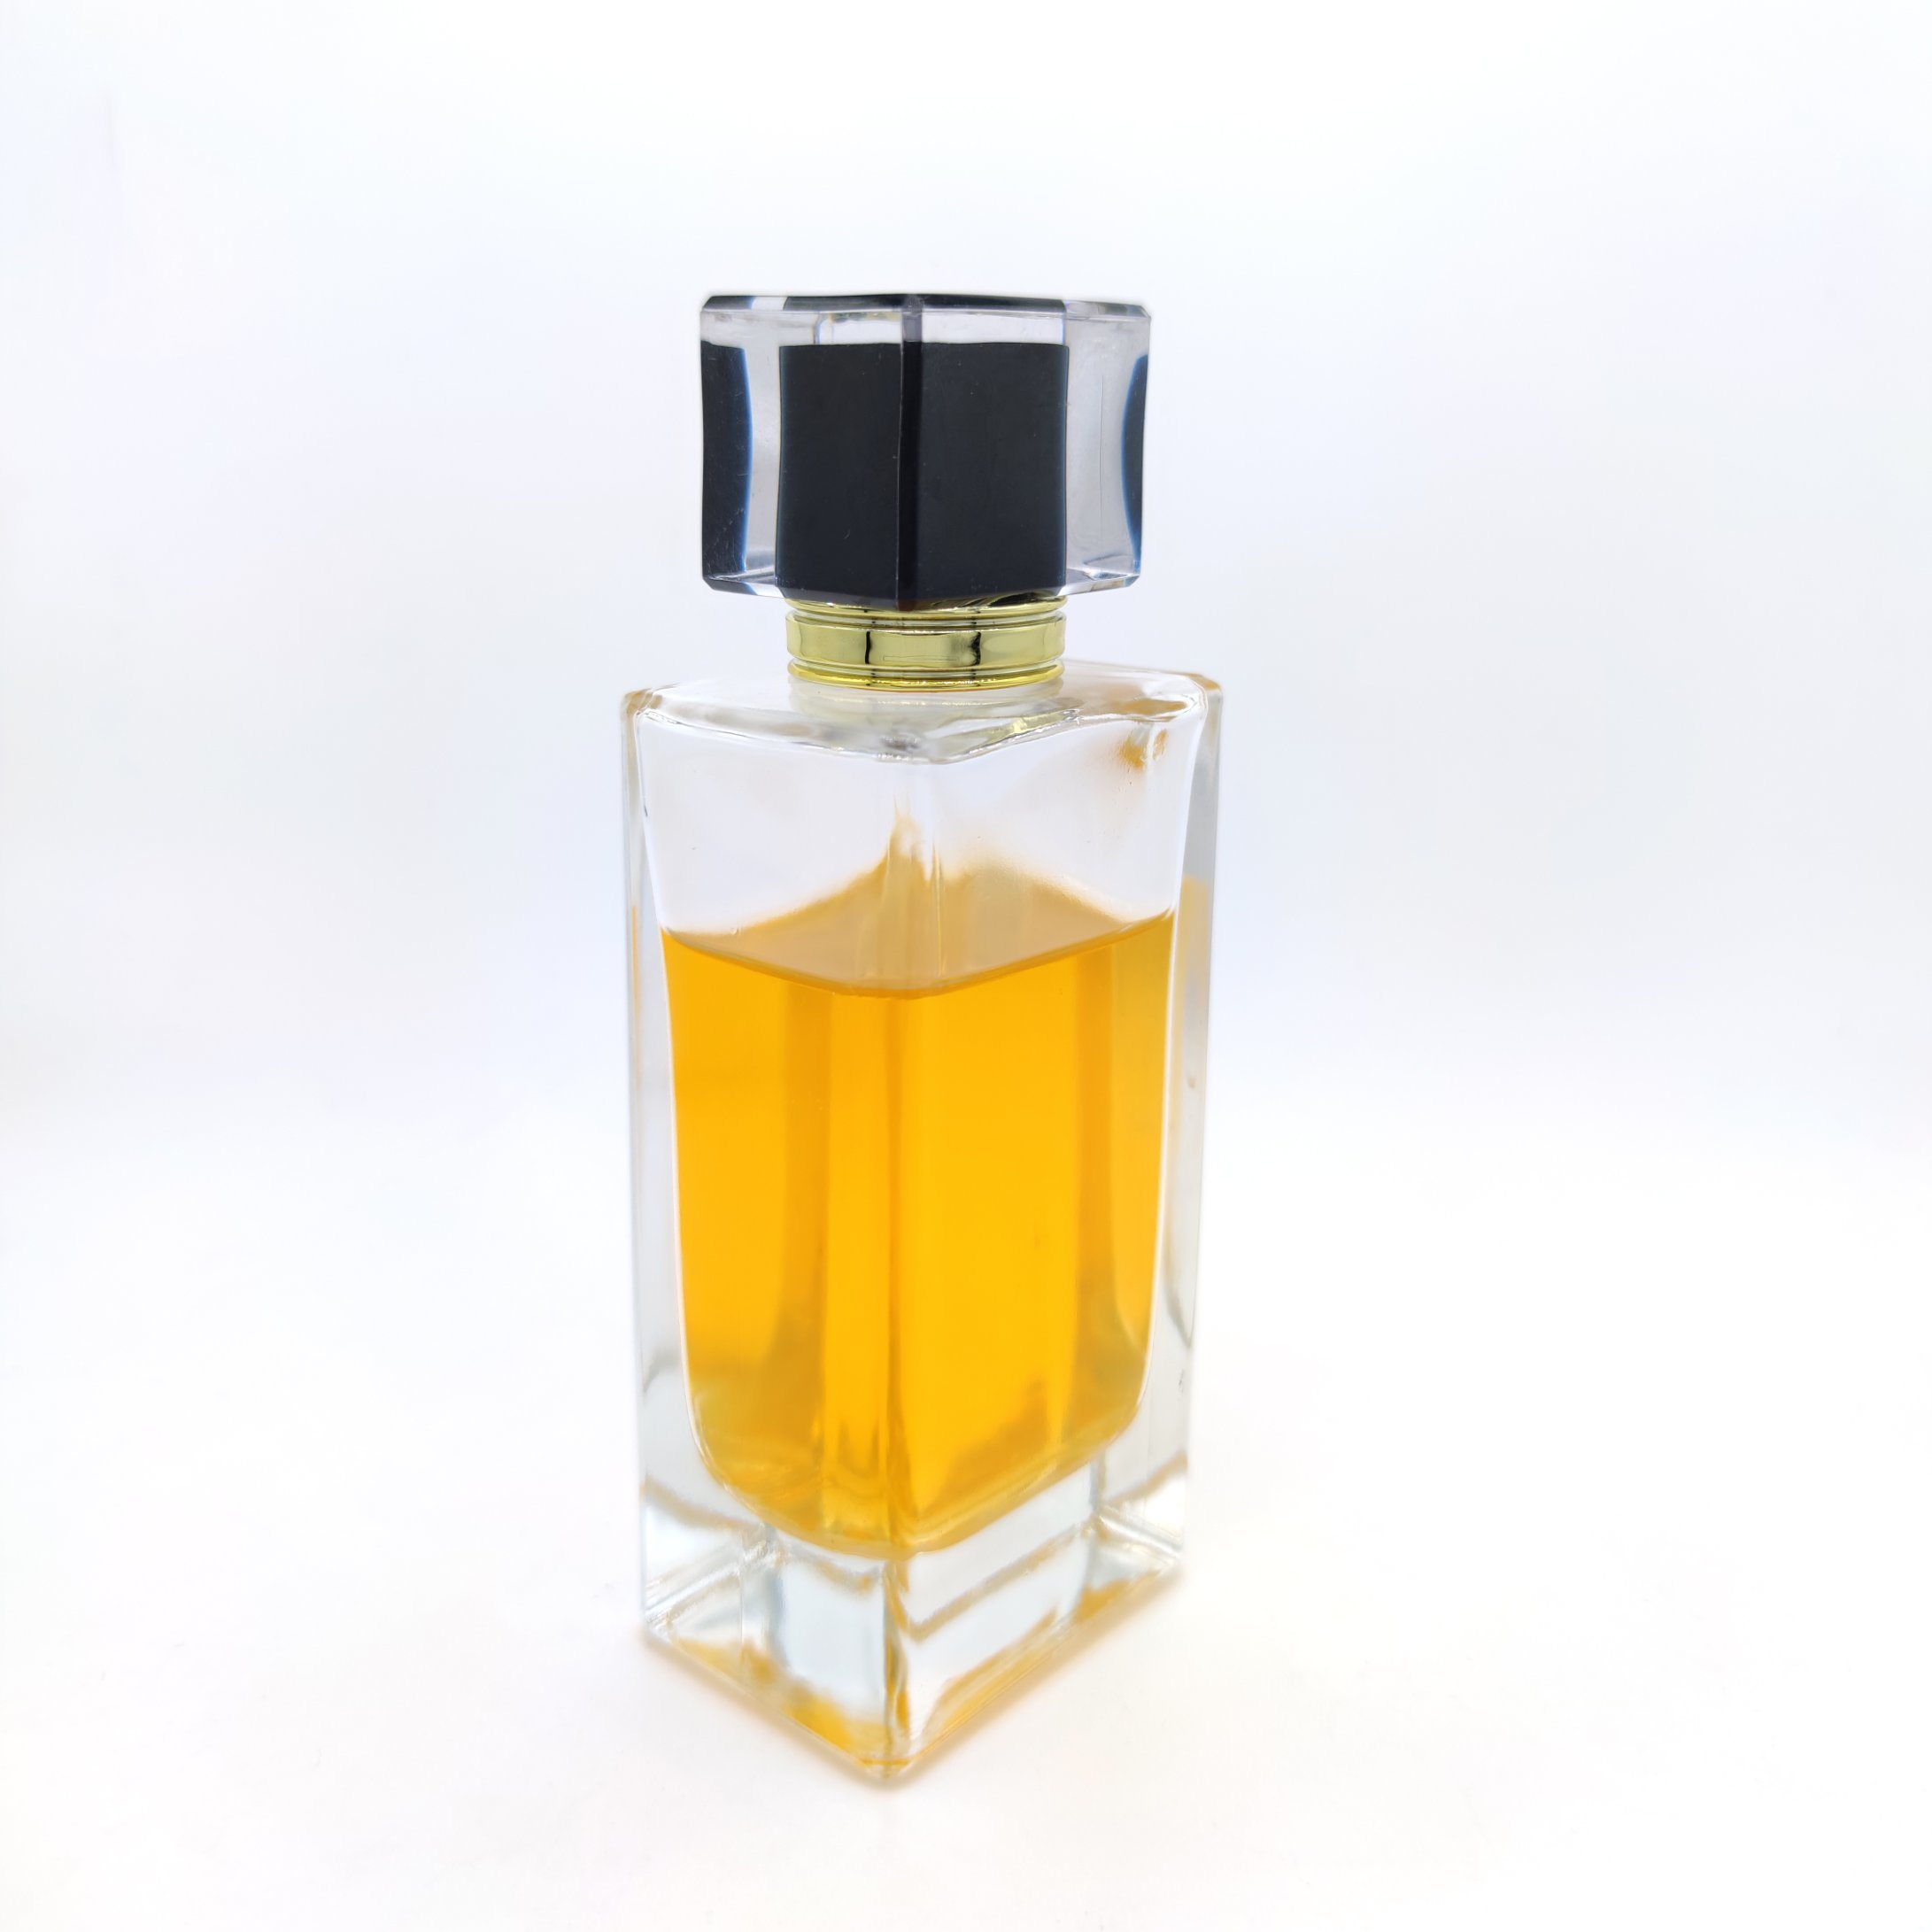 China In Stock Tall Square Perfume Bottle With Interior Internal Inside Painting Acrylic Cap Glass Material Fragrance Bottles Photos Pictures Made In China Com